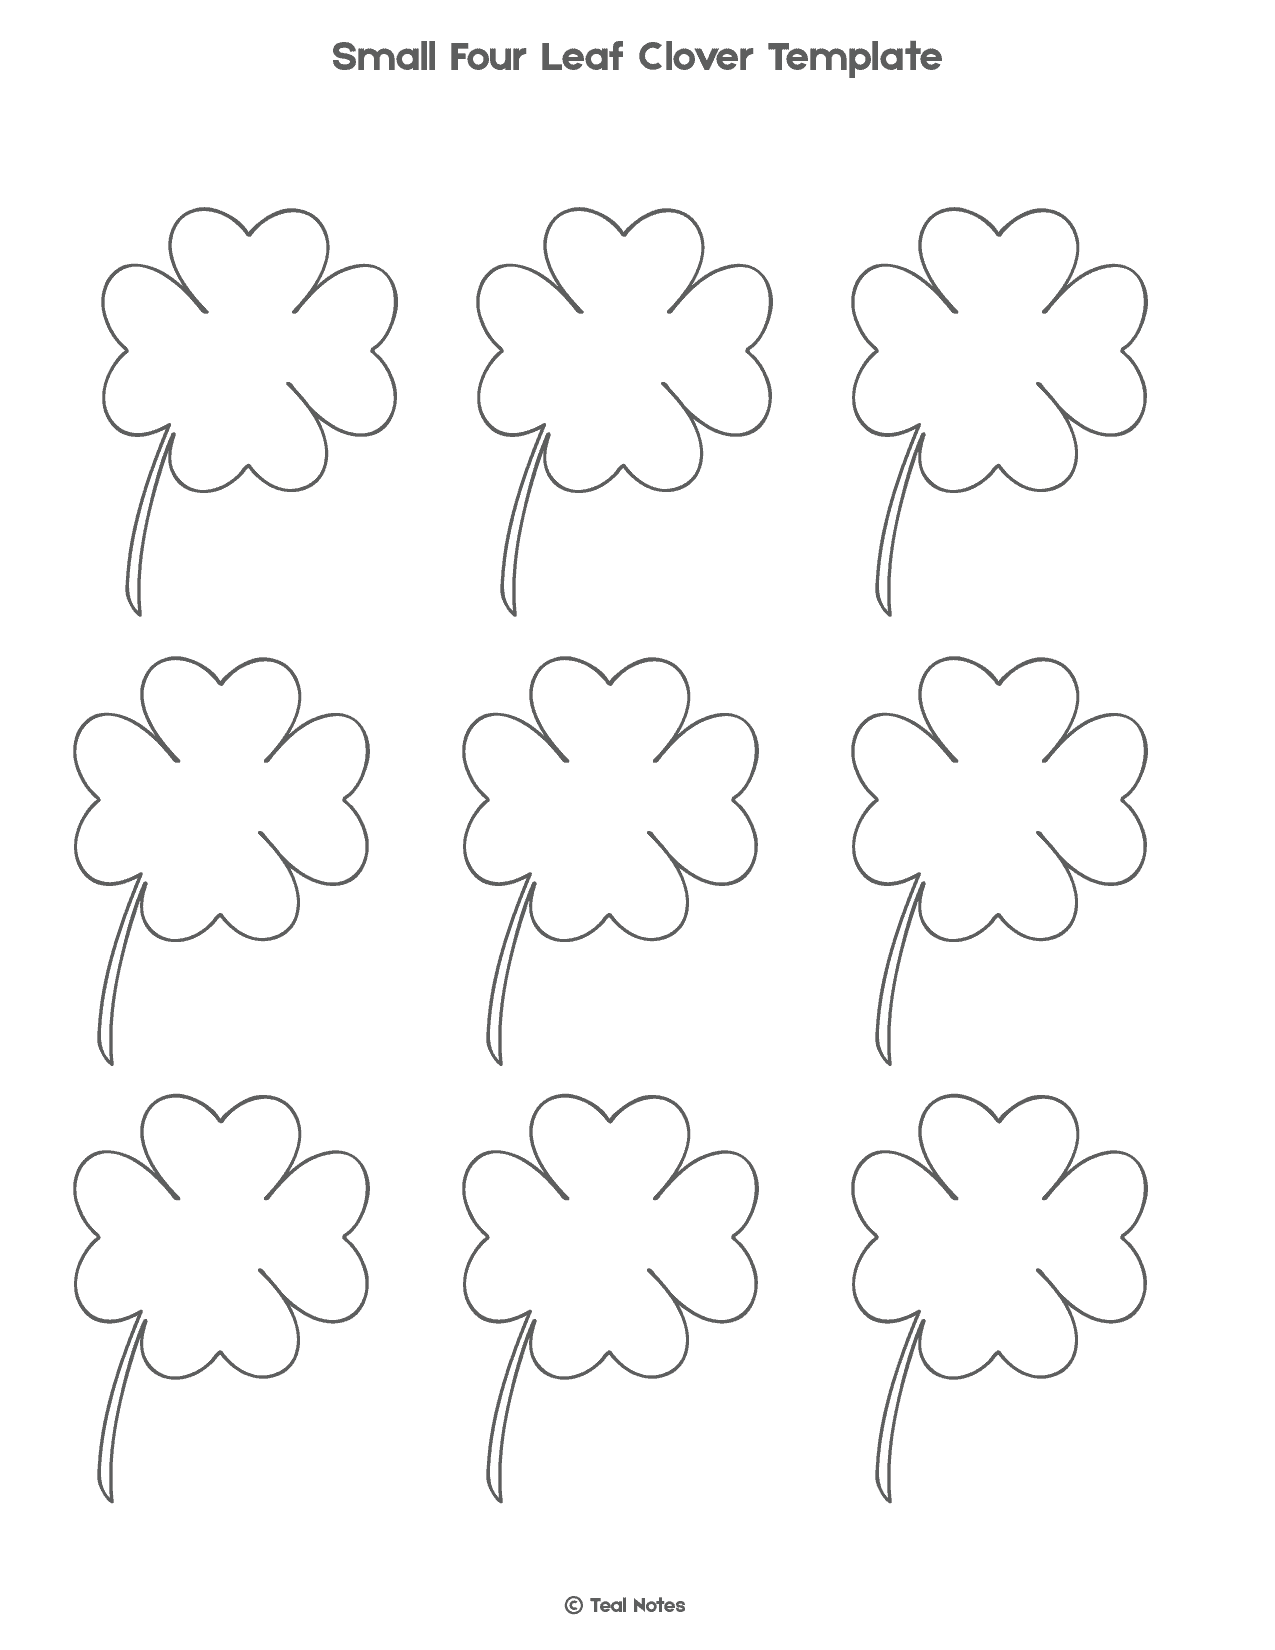 graphic regarding Four Leaf Clover Printable Template identified as 4 Leaf Clover Template: Cost-free Shamrock Template Printable